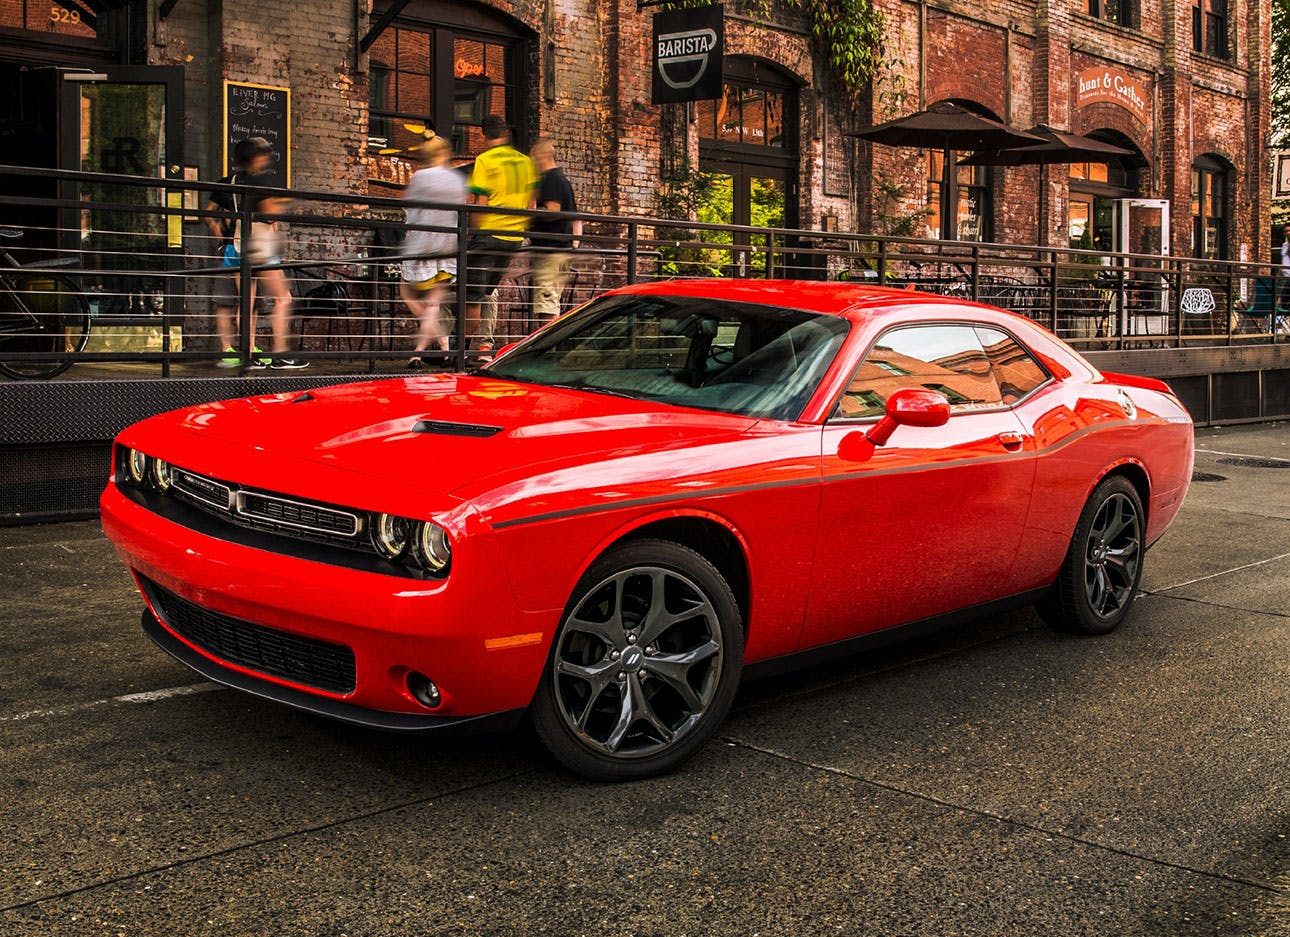 Which is Better, a Chevrolet Camaro or a Dodge Challenger?